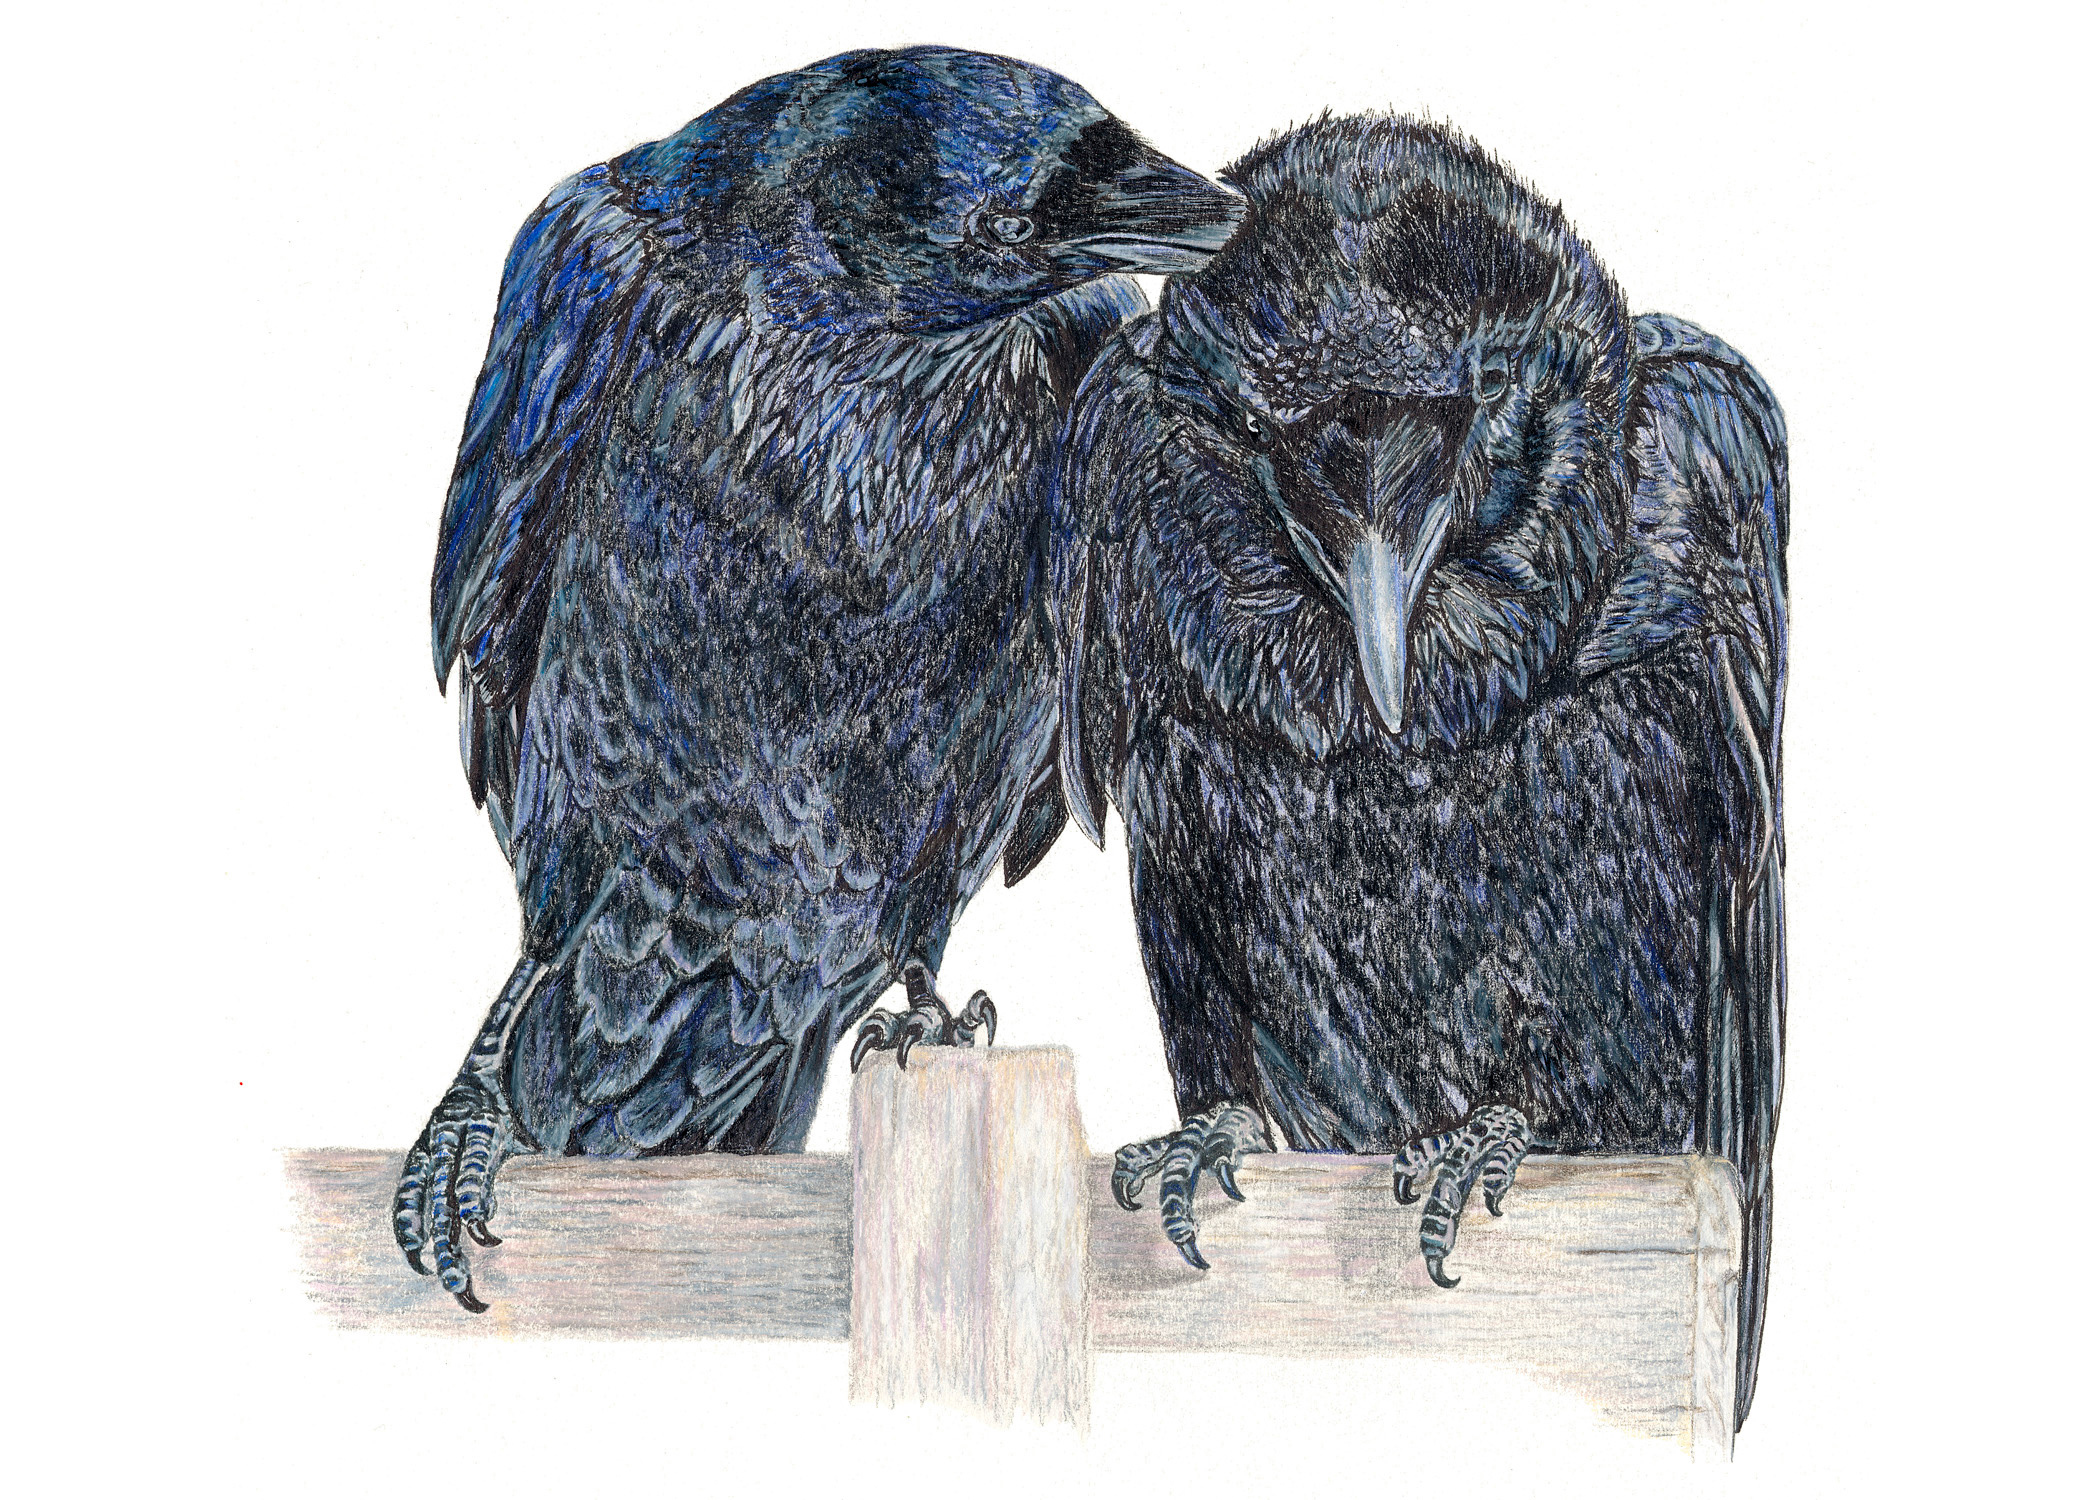 2 Ravens, by Beth Surdut, one of 3 prints by the artist included in our virtual gallery exhibition (inquiries to: Marie Kazalia, at email: MarieKazalia@gmail.com)